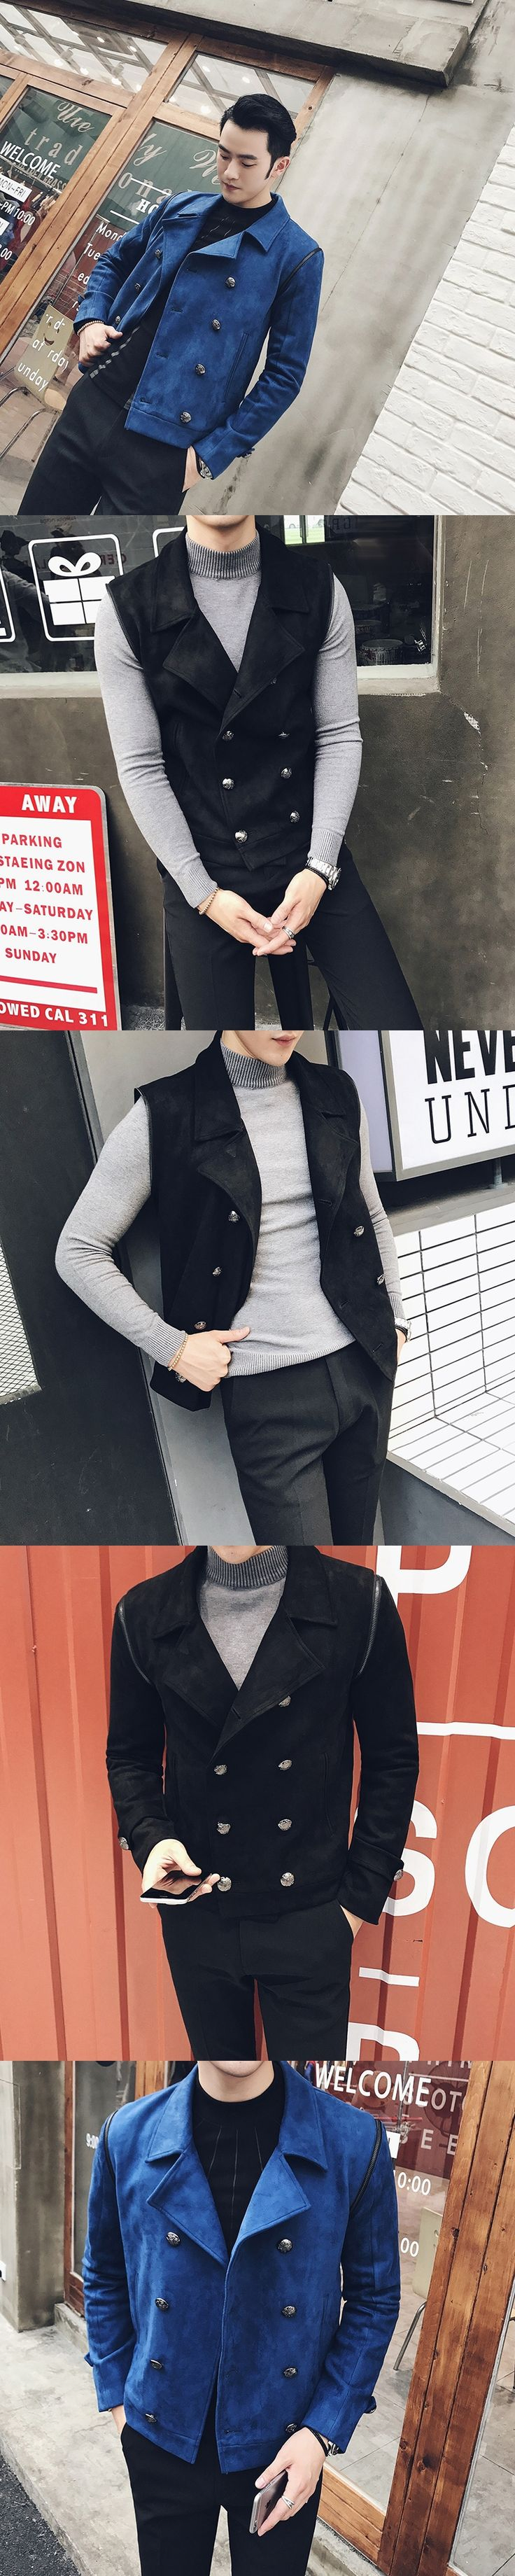 2017 Royal Blue Jackets Mens Double Breasted Jackets Mens Bomber Jackets Deerskin Black Two Pcs Blazers Winter Thick Jaqueta